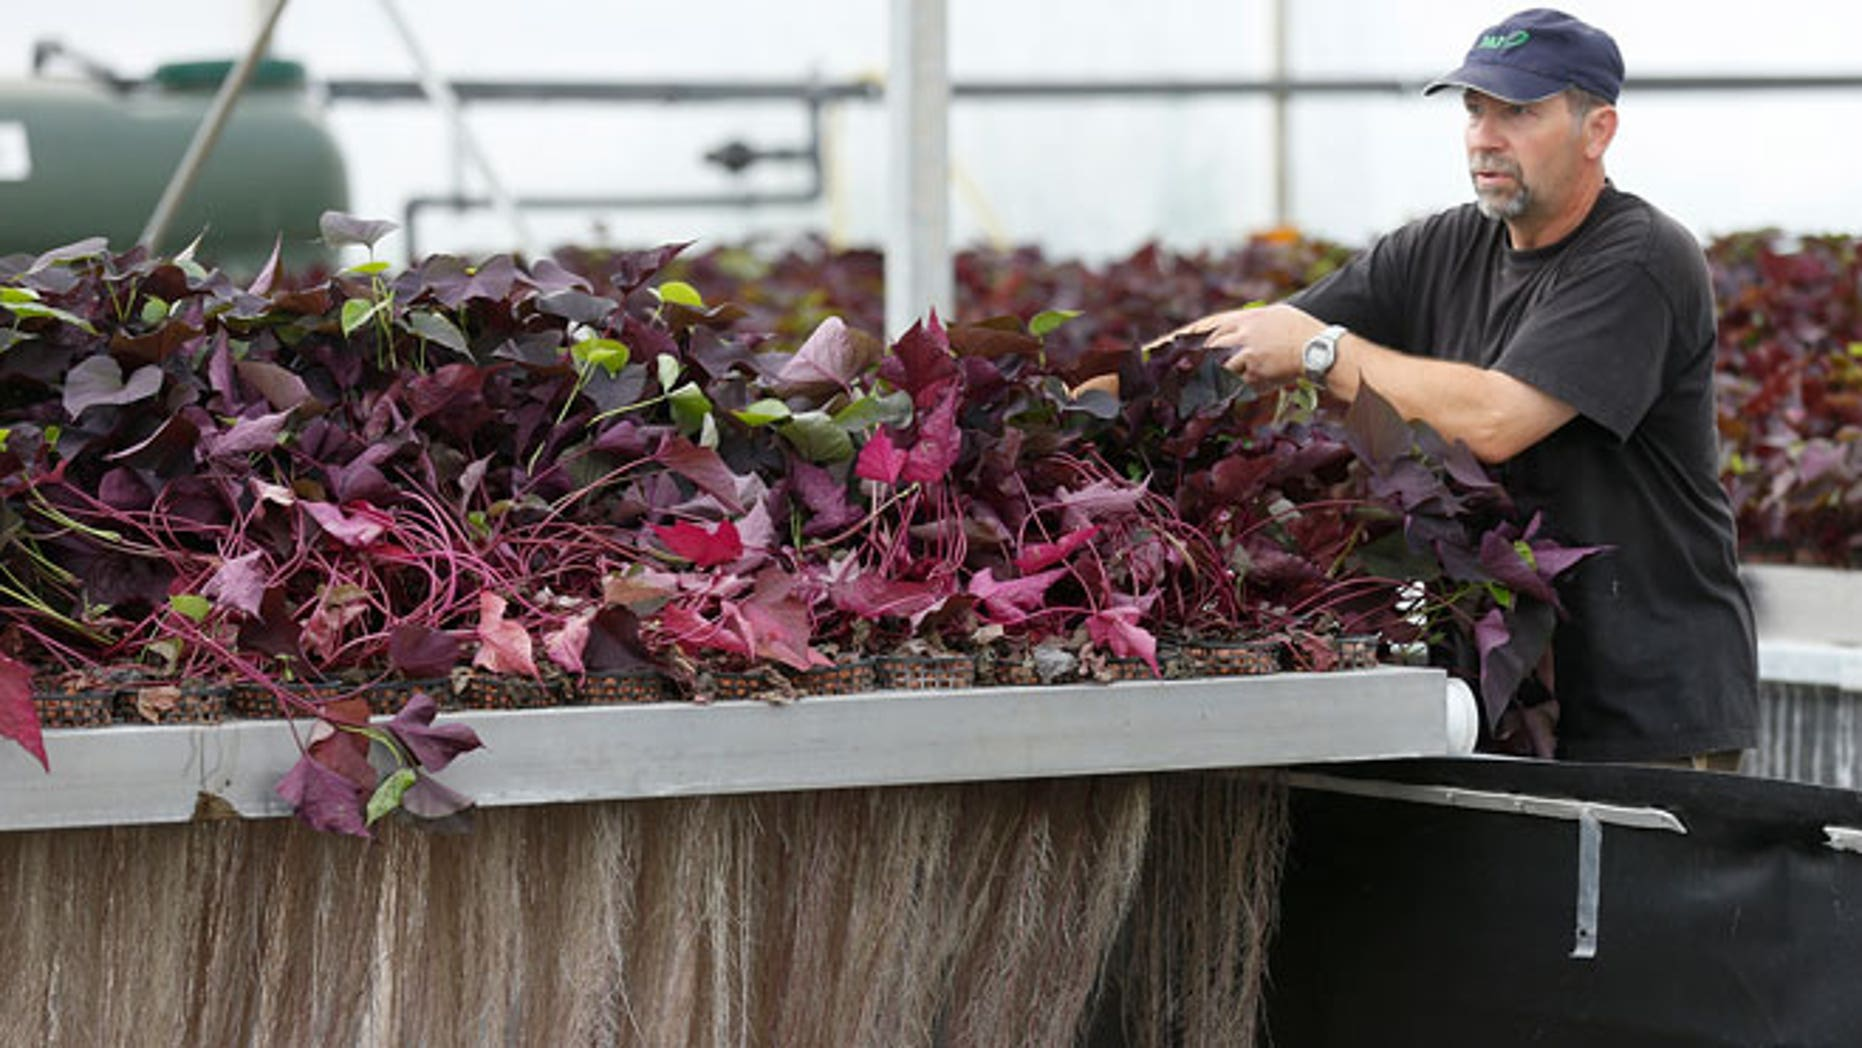 "An employee prepares the exudation of plants roots at the Plant Advanced Technologies (PAT) company greenhouse in Laronxe near Nancy, Eastern France, June 19, 2015. The farmers employed at the site in Laronxe are growing plants in a special way with a view to ""milking"" them for use in medicines, cosmetics and agrochemicals. Several major brands, including Germany's BASF and France's Chanel, have teamed up with Plant Advanced Technologies (PAT) in the hope of securing privileged access to the so-called 'biomolecules' it extracts through the use of a patented technique. Picture taken June 19, 2015."